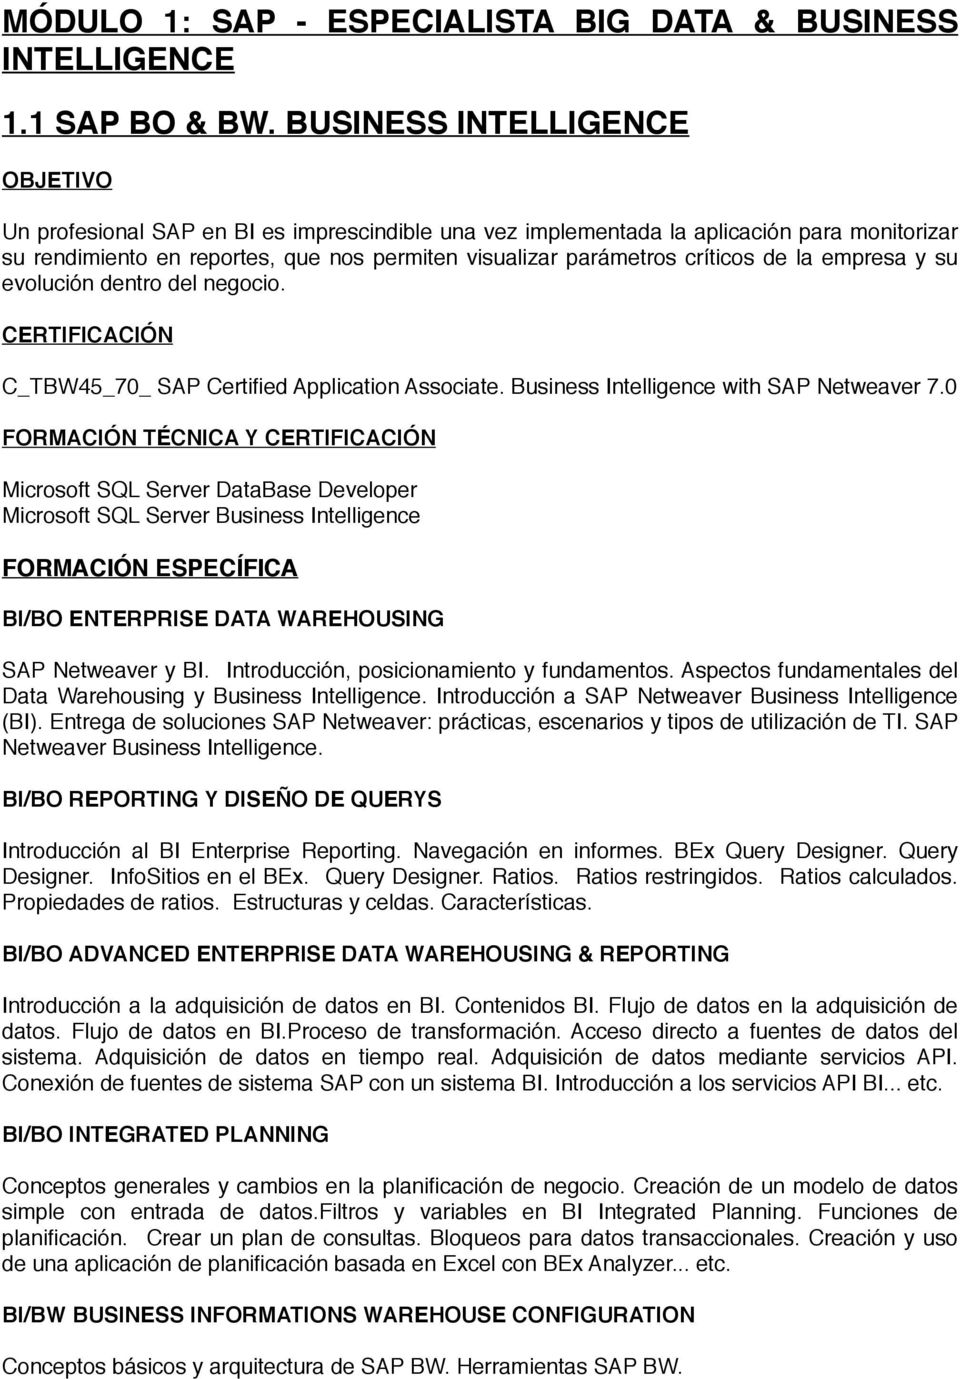 empresa y su evolución dentro del negocio. C_TBW45_70_ SAP Certified Application Associate. Business Intelligence with SAP Netweaver 7.